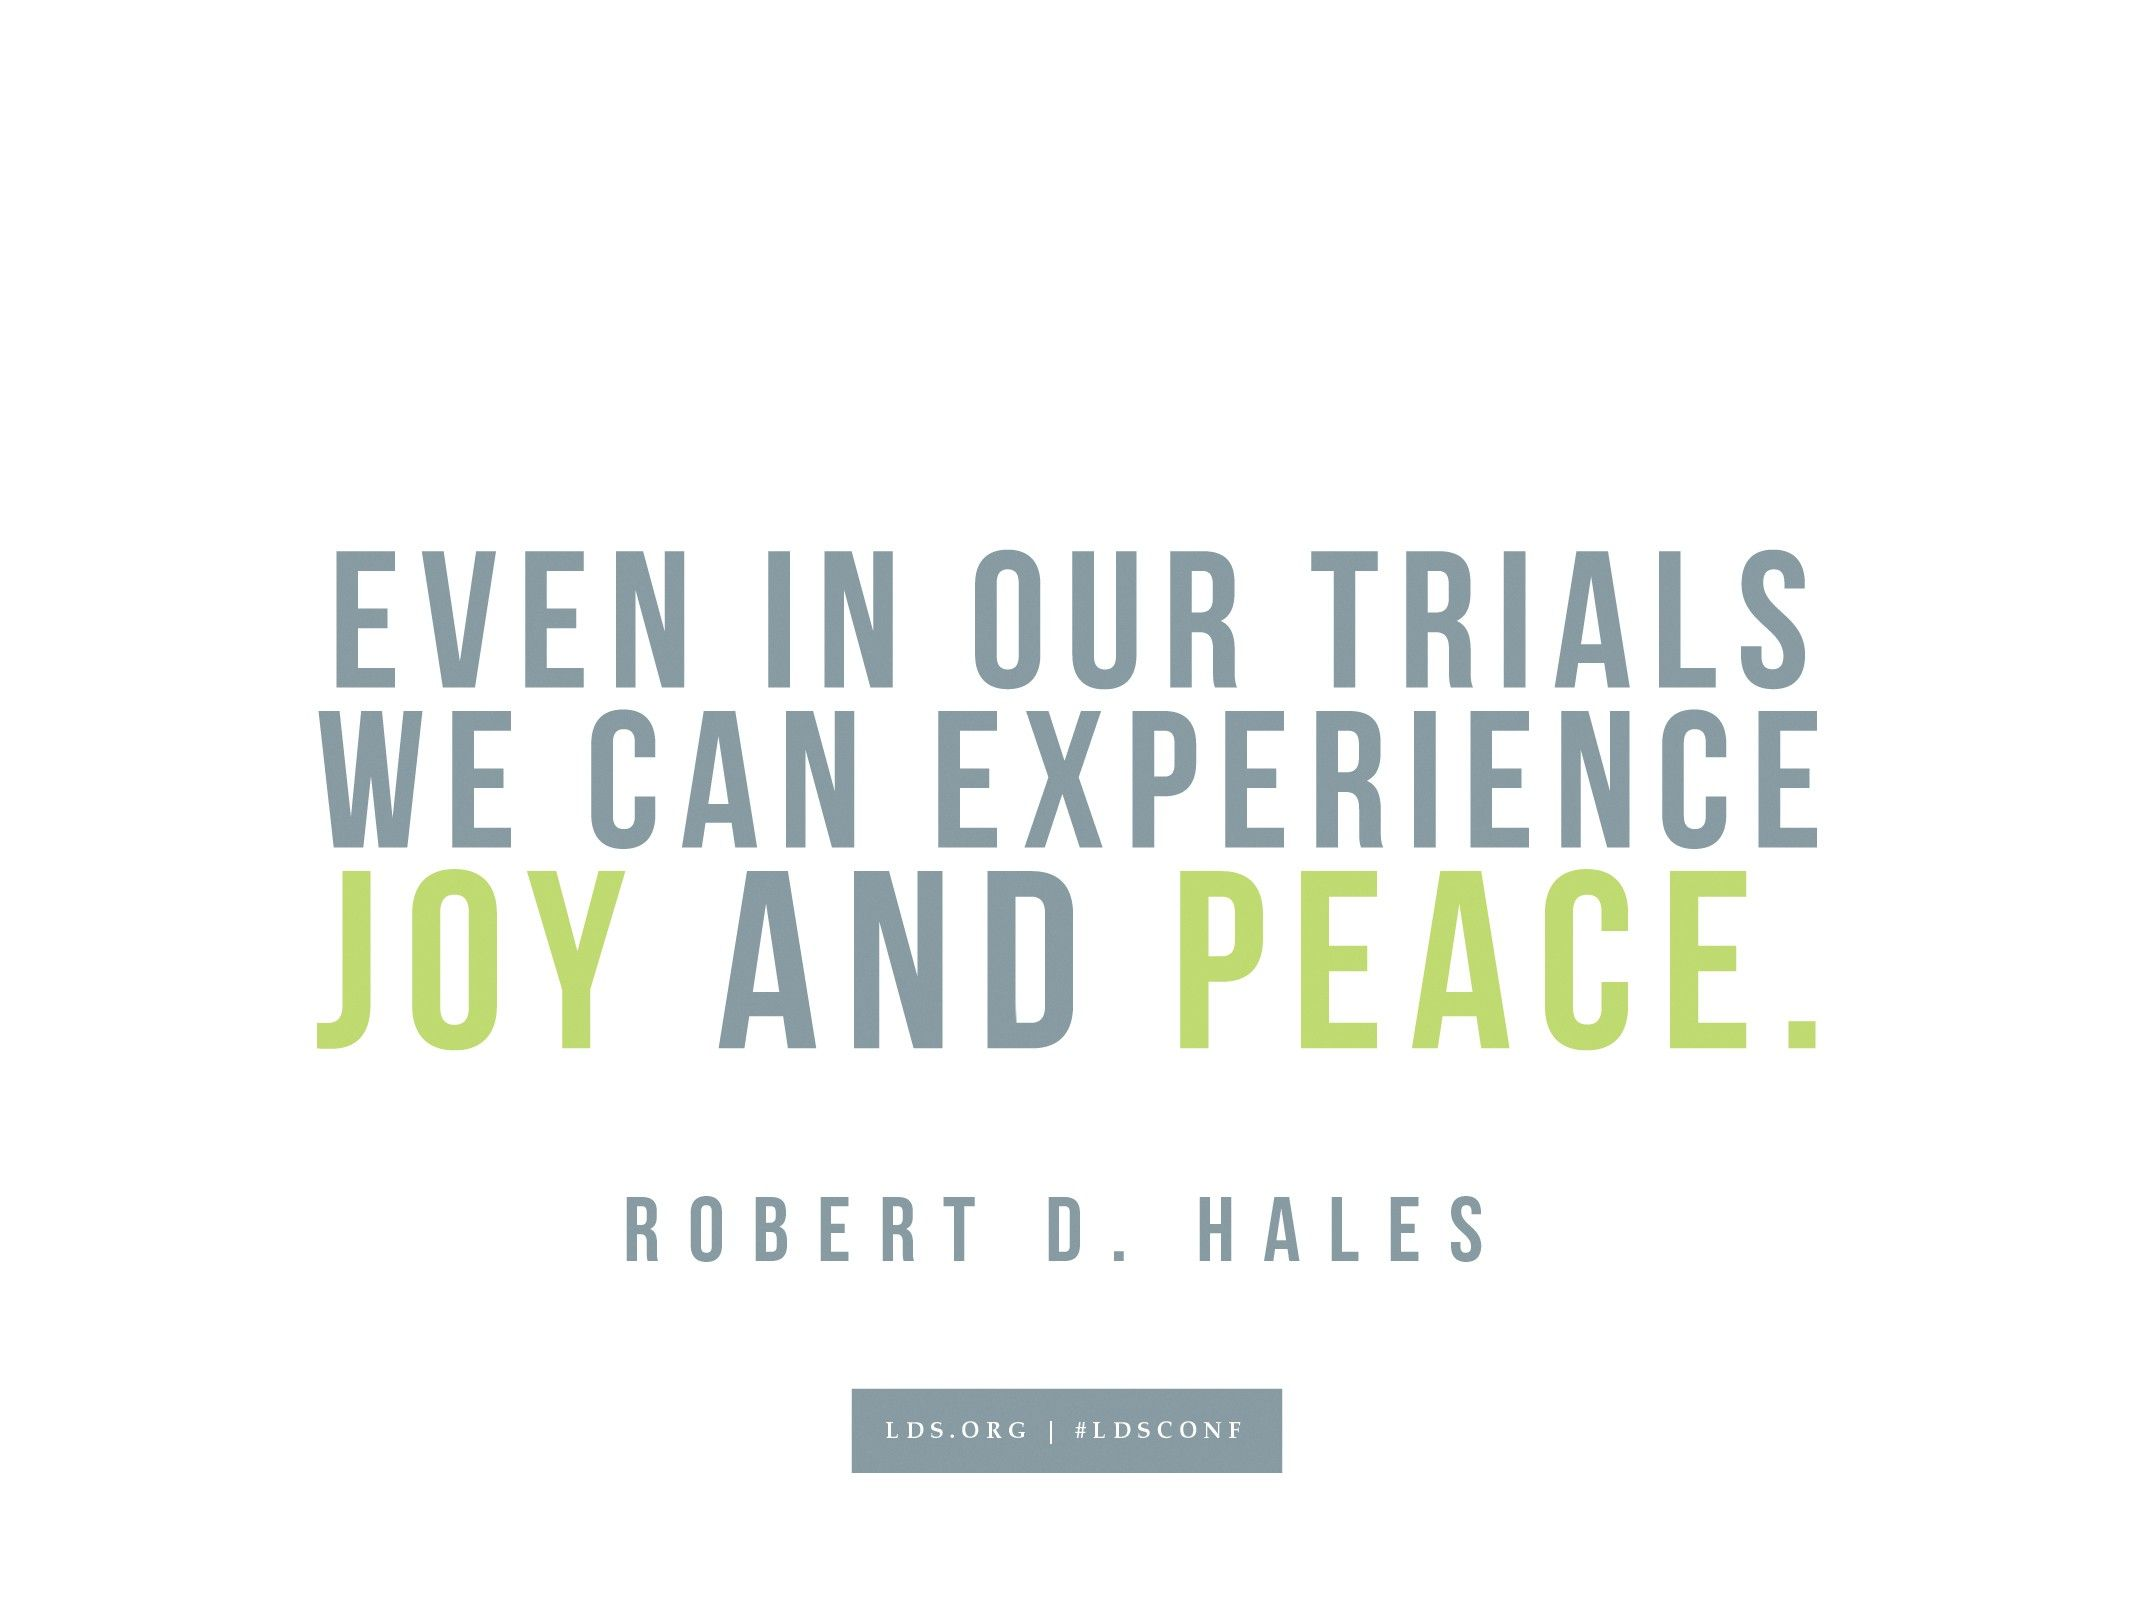 """""""Even in our trials we can experience joy and peace.""""—Robert D. Hales, """"'Come, Follow Me' by Practicing Christian Love and Service"""""""